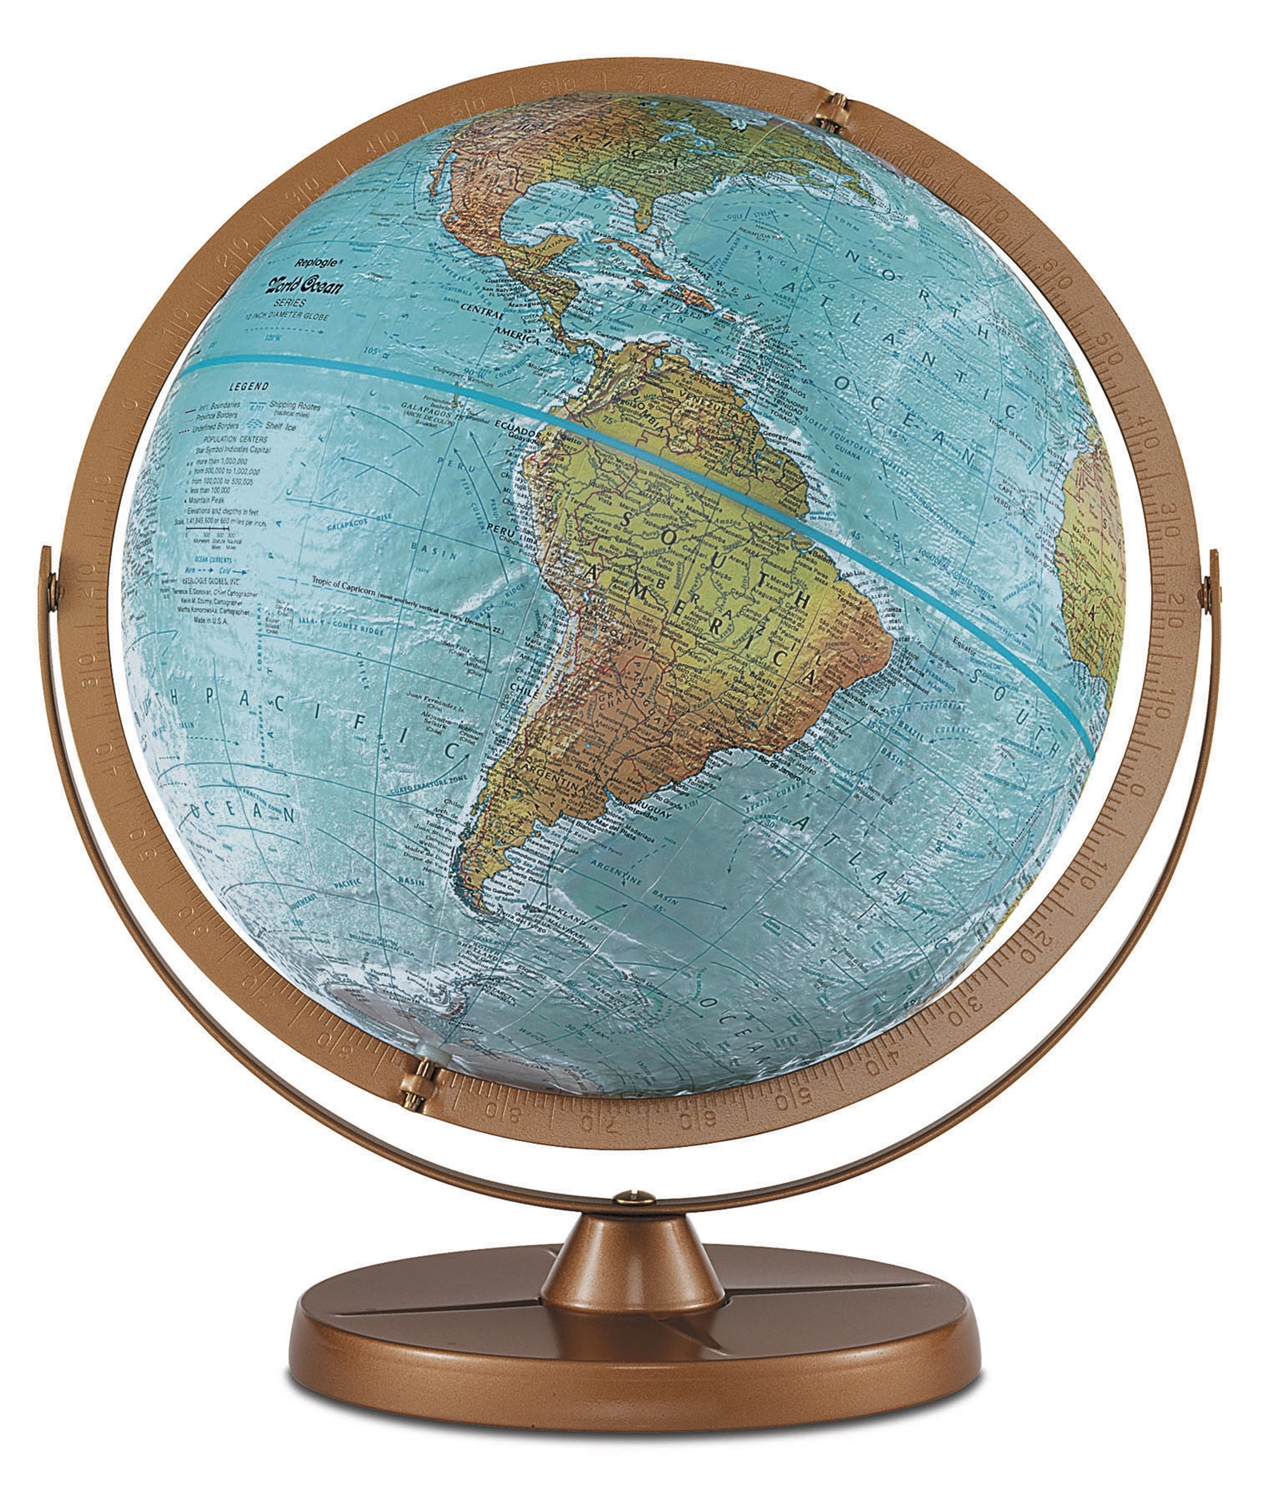 Atlantis 12 Inch Desk Globe Land Areas On This Special Globe Are In True To Life